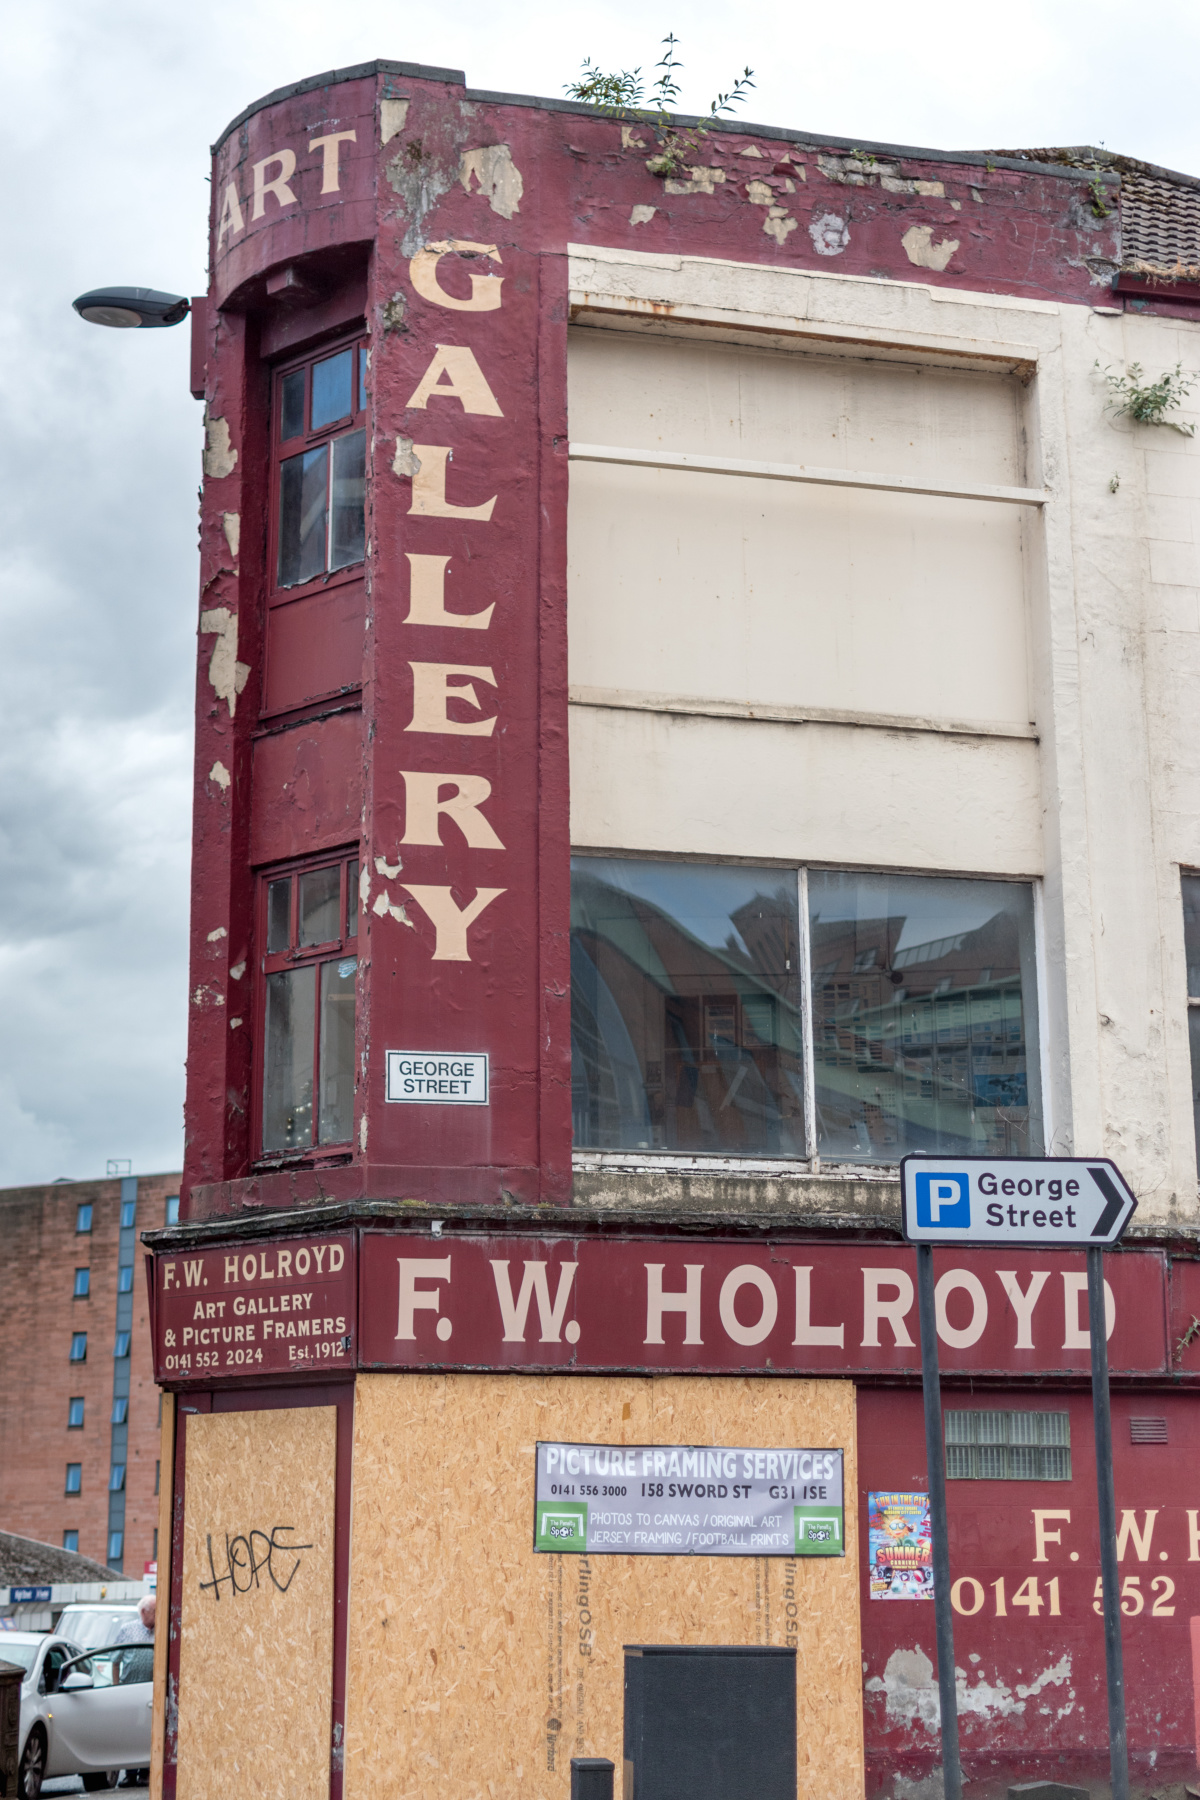 Gallery and George Street